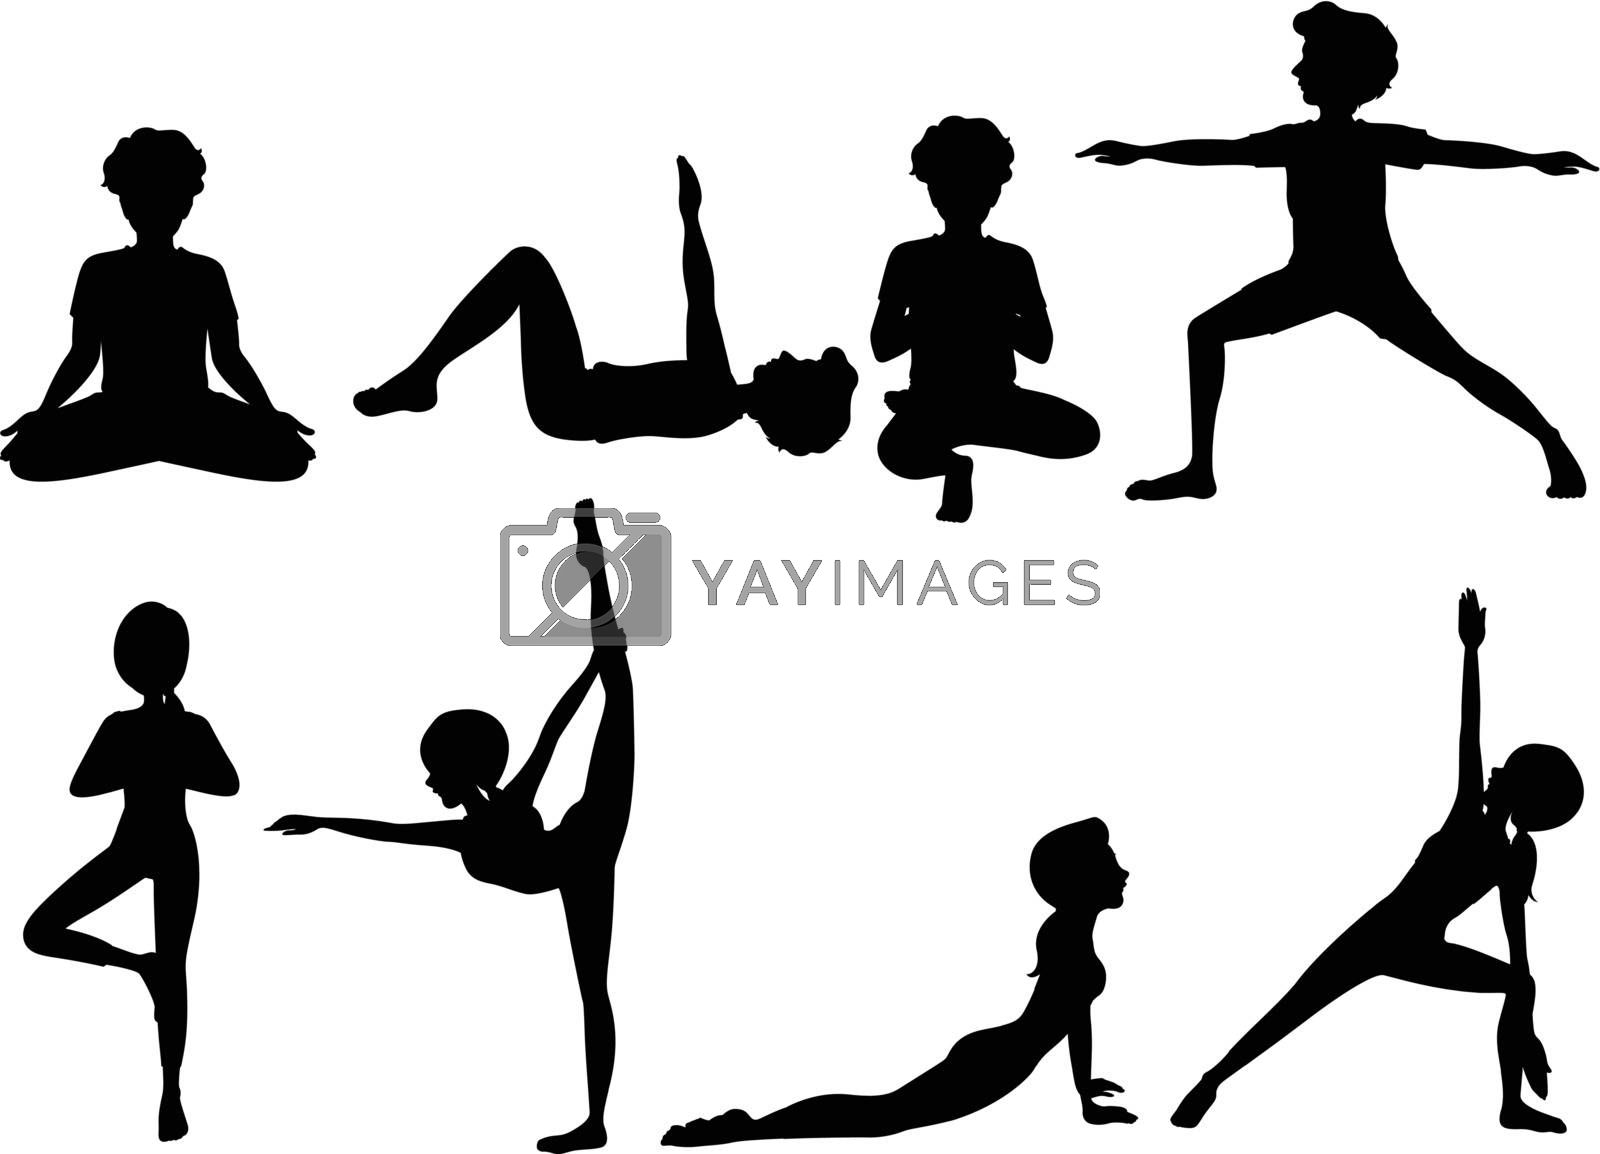 Illustration of the silhouette of people exercising on a white background